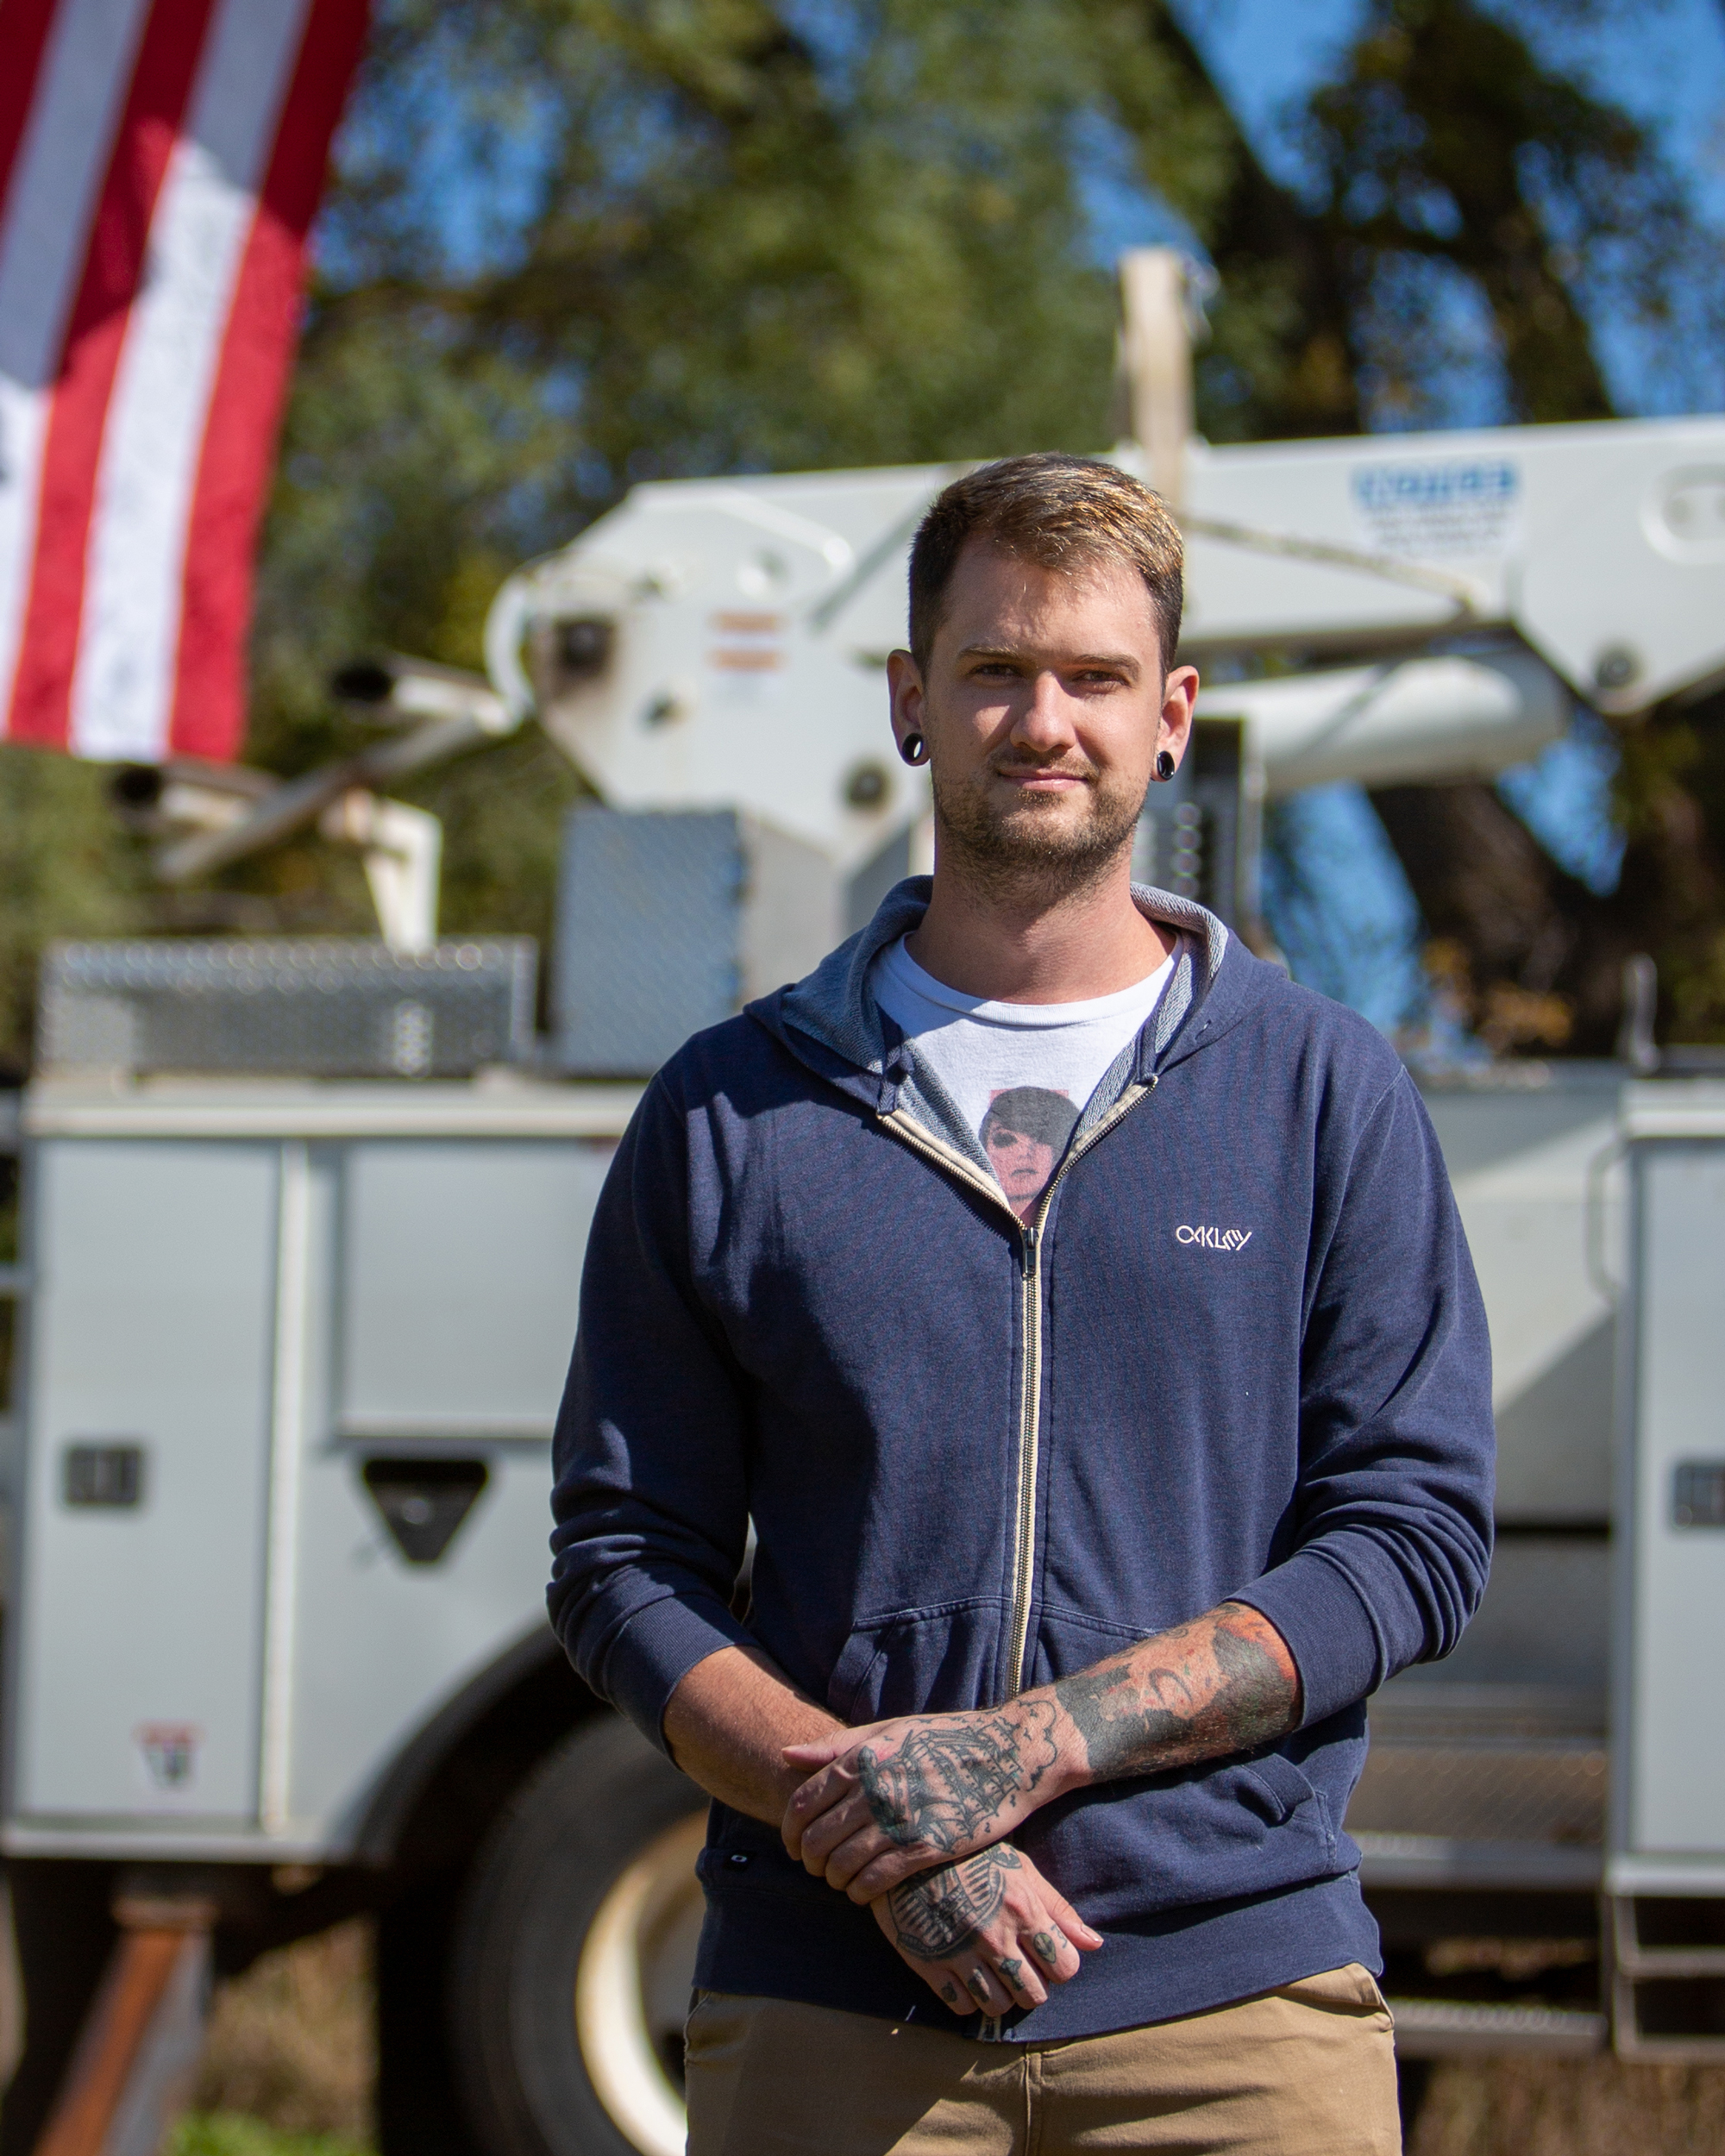 Sam Sherman, U.S. military veteran, Electrical Construction & Maintenance Technology